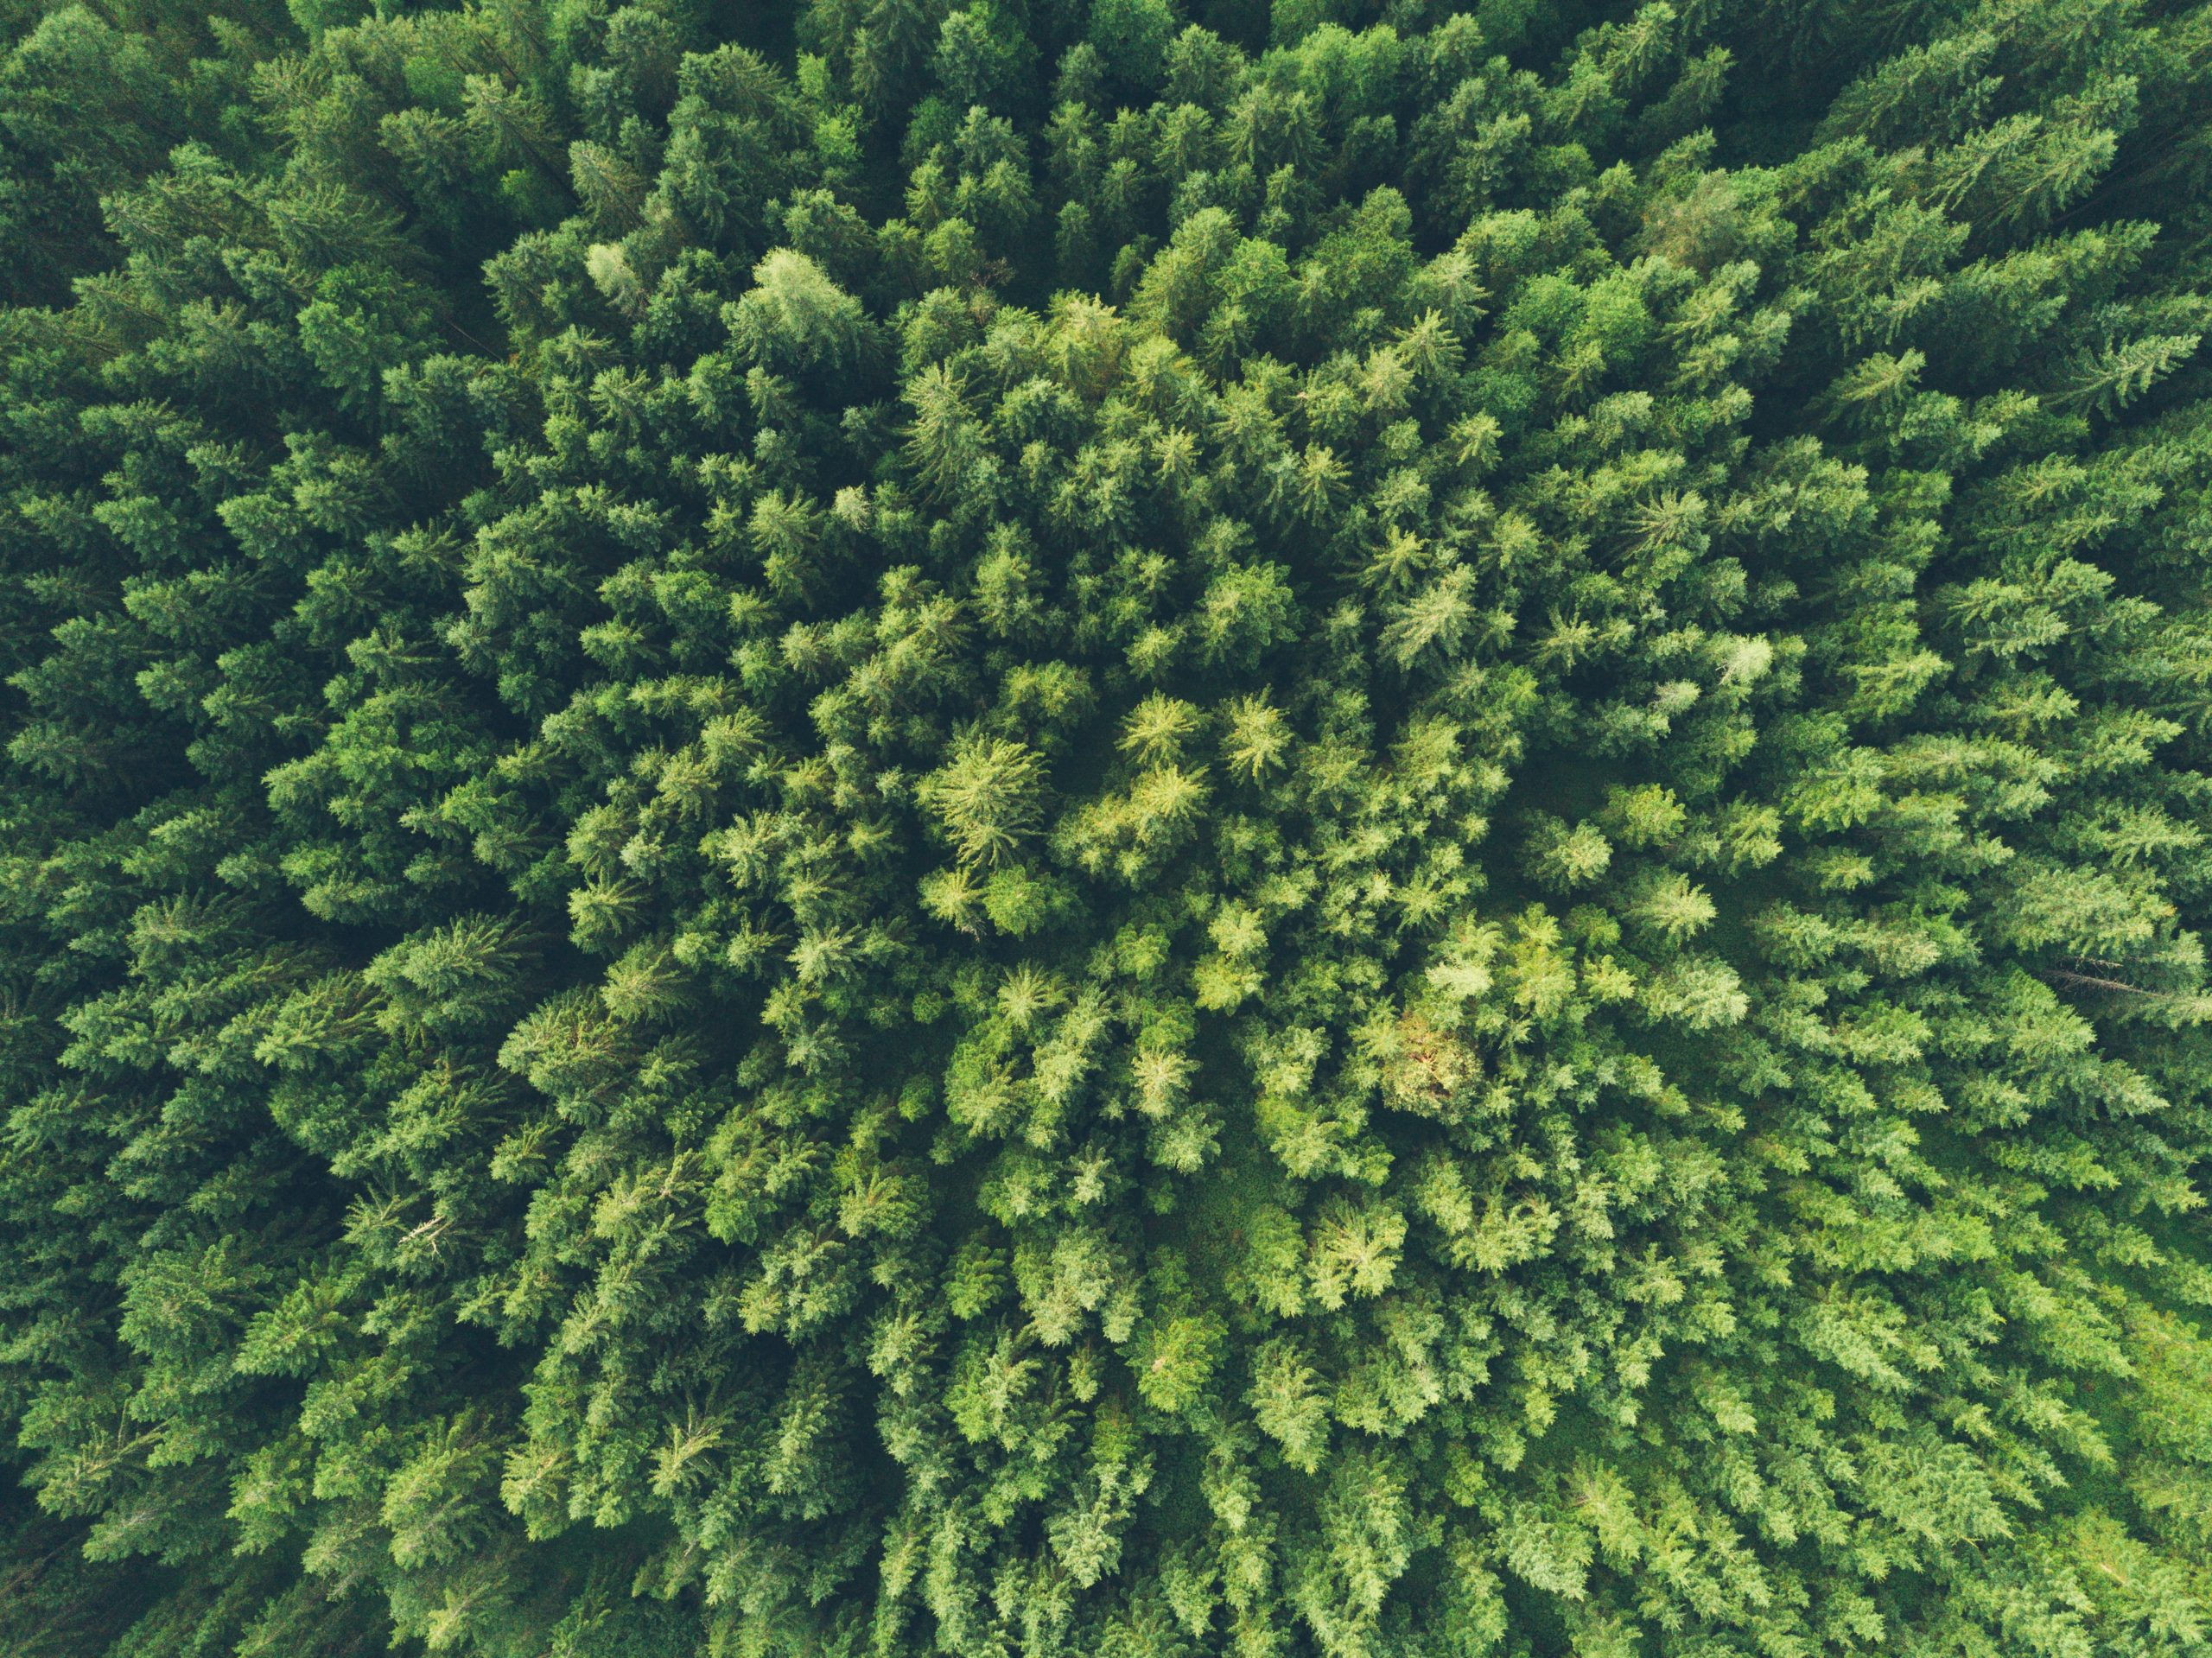 The OECD publishes its 2020 Luxembourg Environmental Performance Review